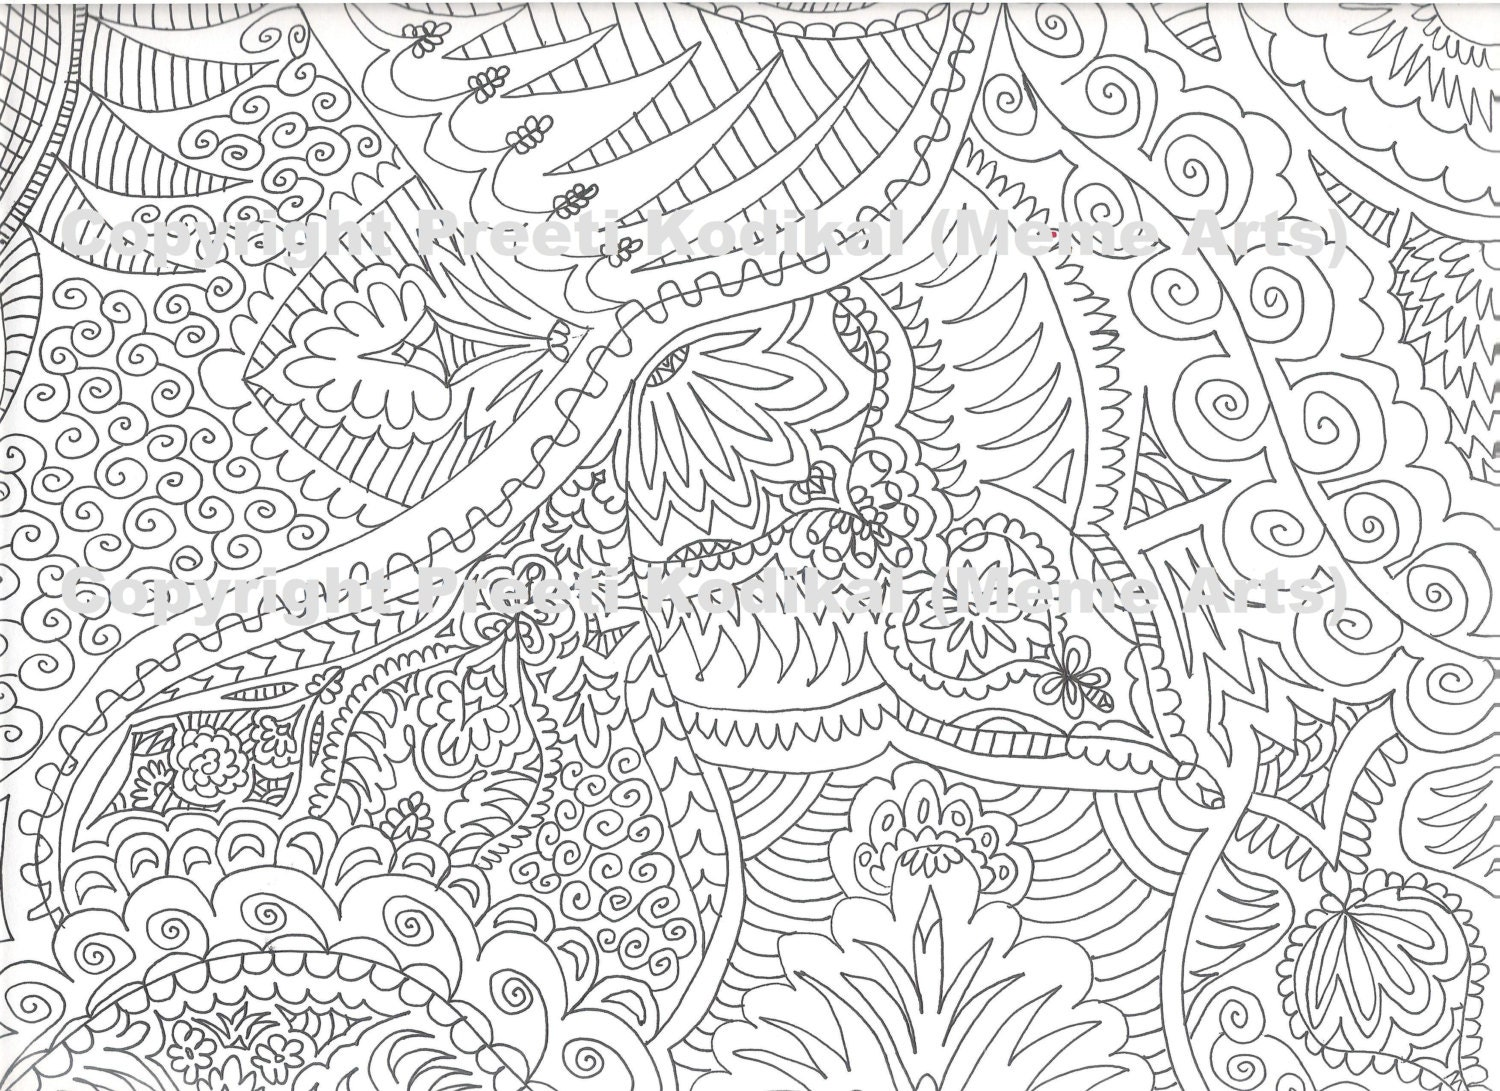 Zentangle coloring pages printable - Printable Coloring Pages Zentangle Items Similar To Pen Illustration Printable Coloring Page Zentangle